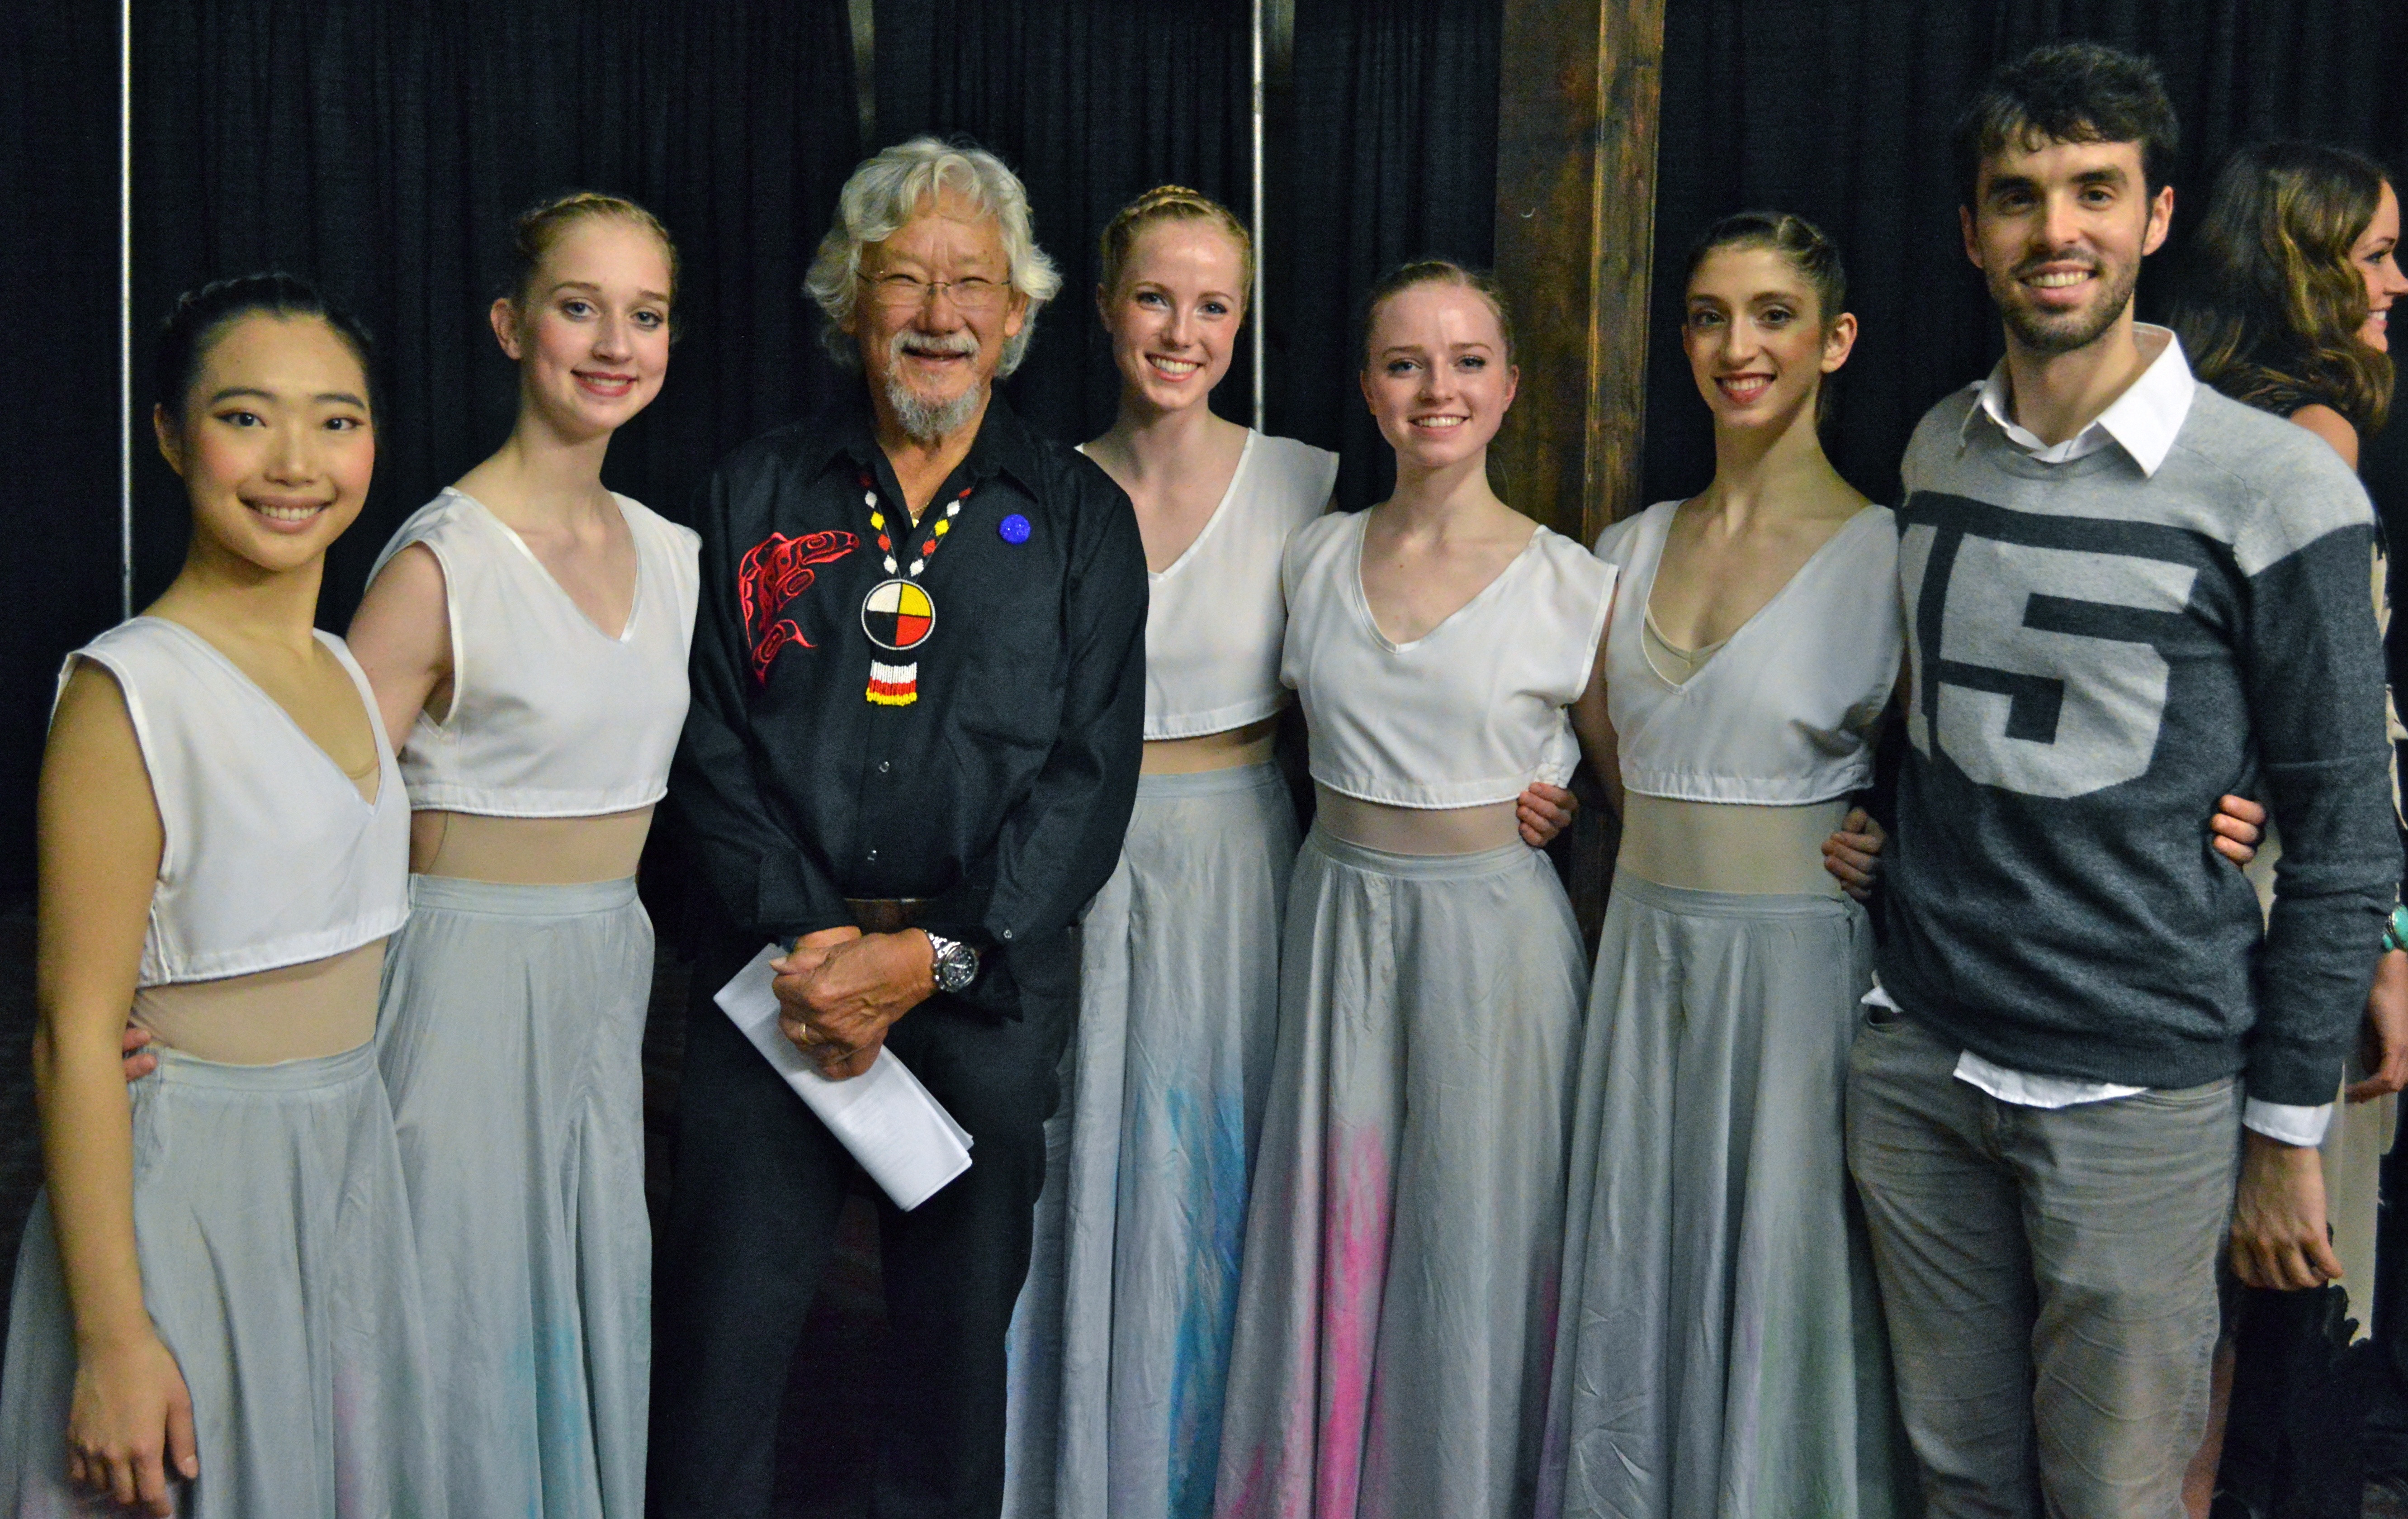 RWB School Professional Division Aspirants with David Suzuki. Photo: Jane Puchniak.